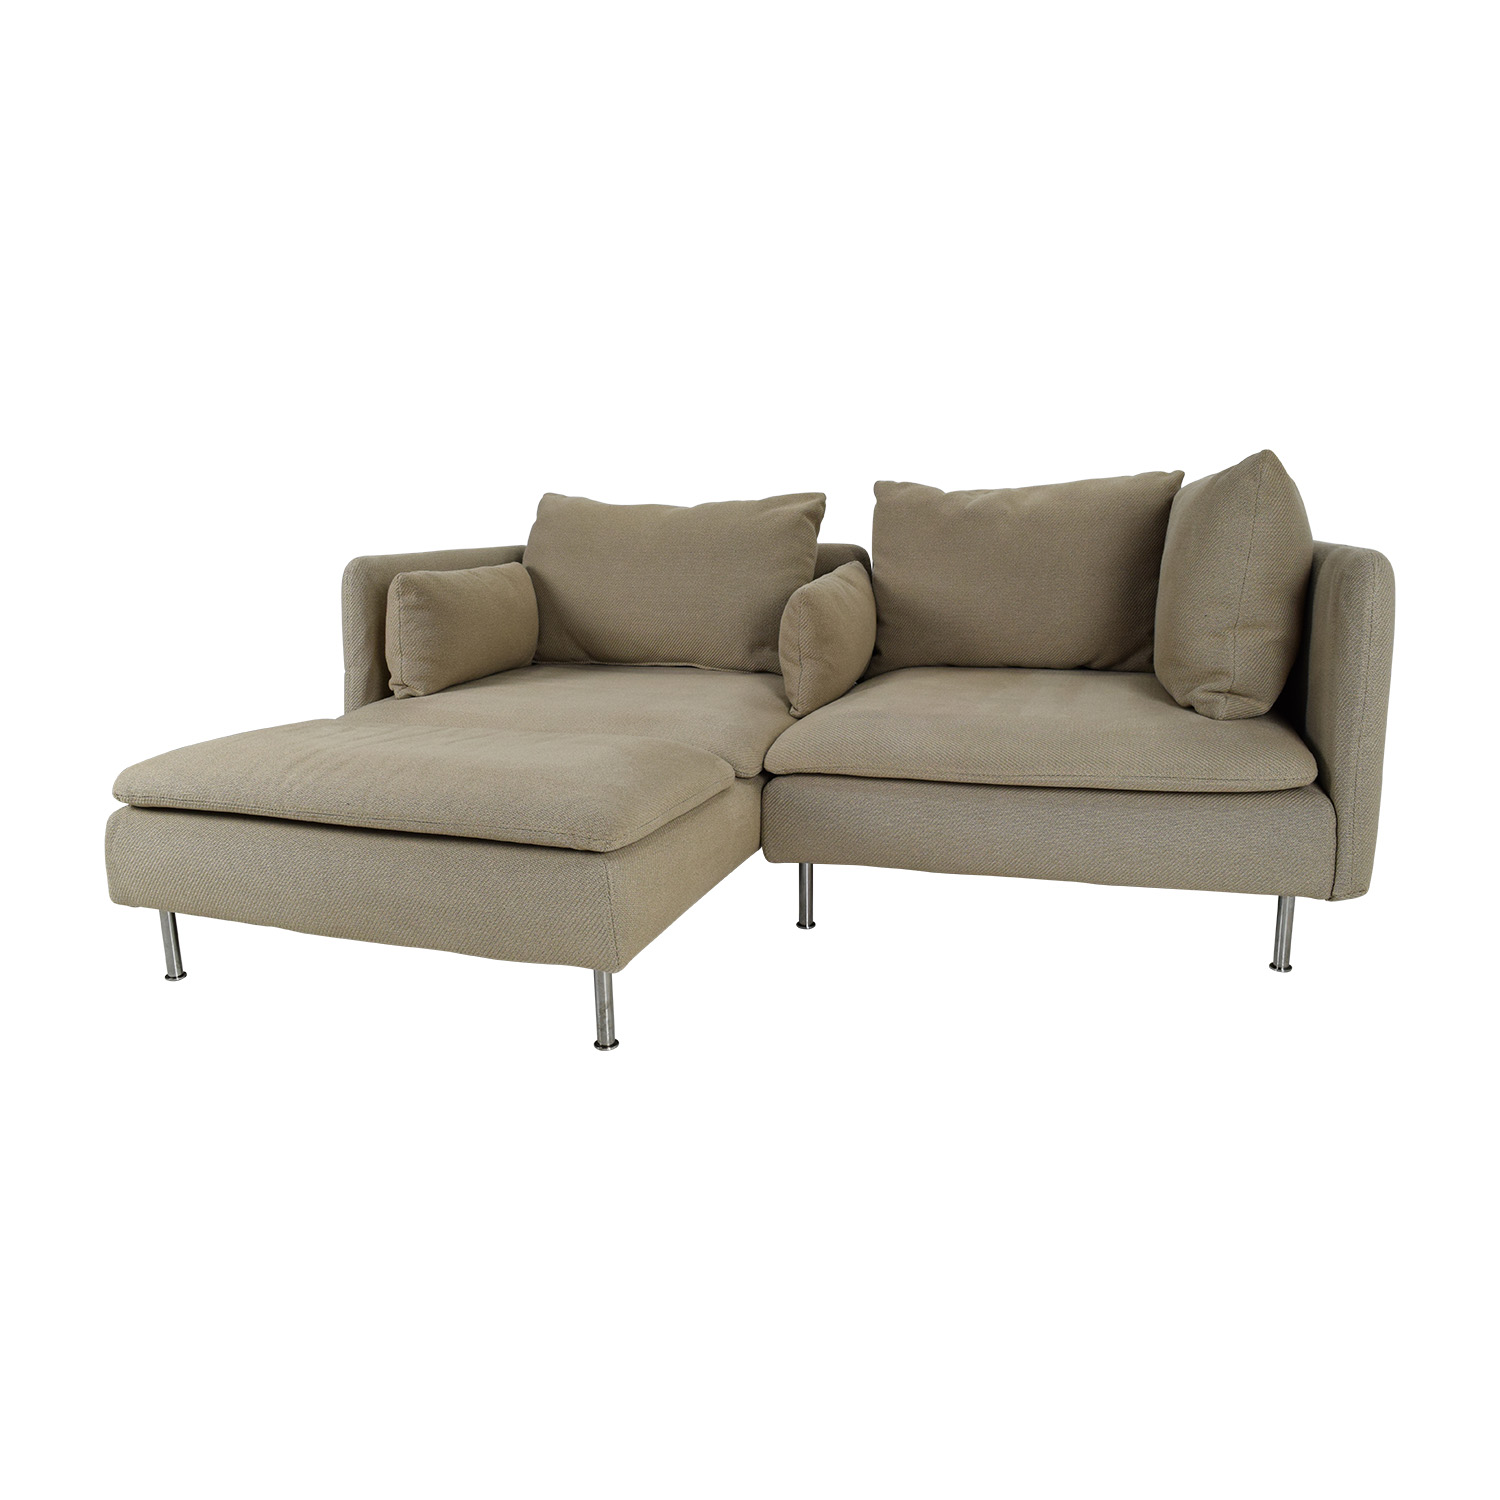 50% OFF IKEA Soderhamn Sectional Sofa Sofas